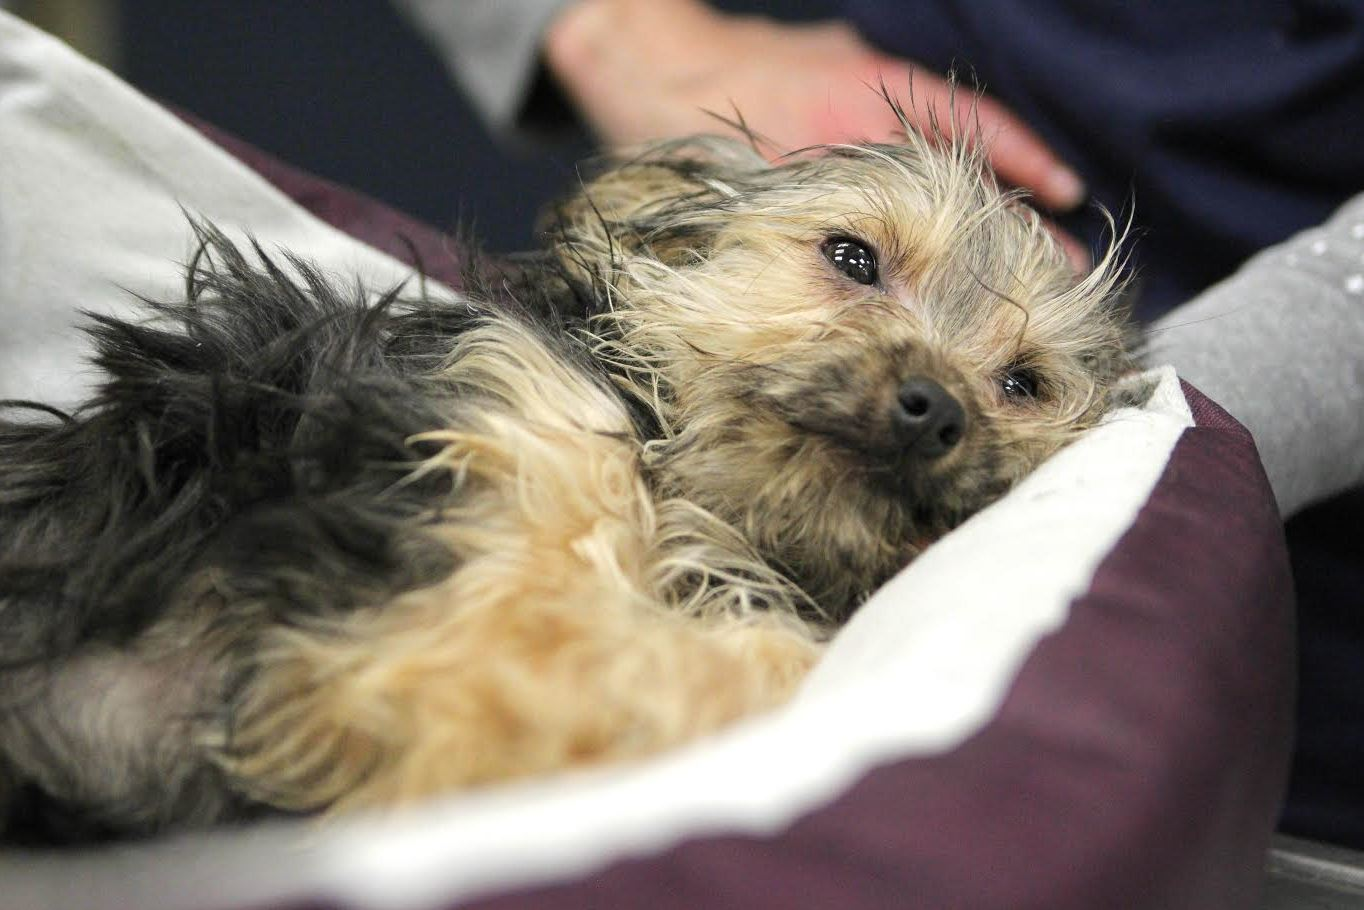 Police investigating after dog with broken legs abandoned ...